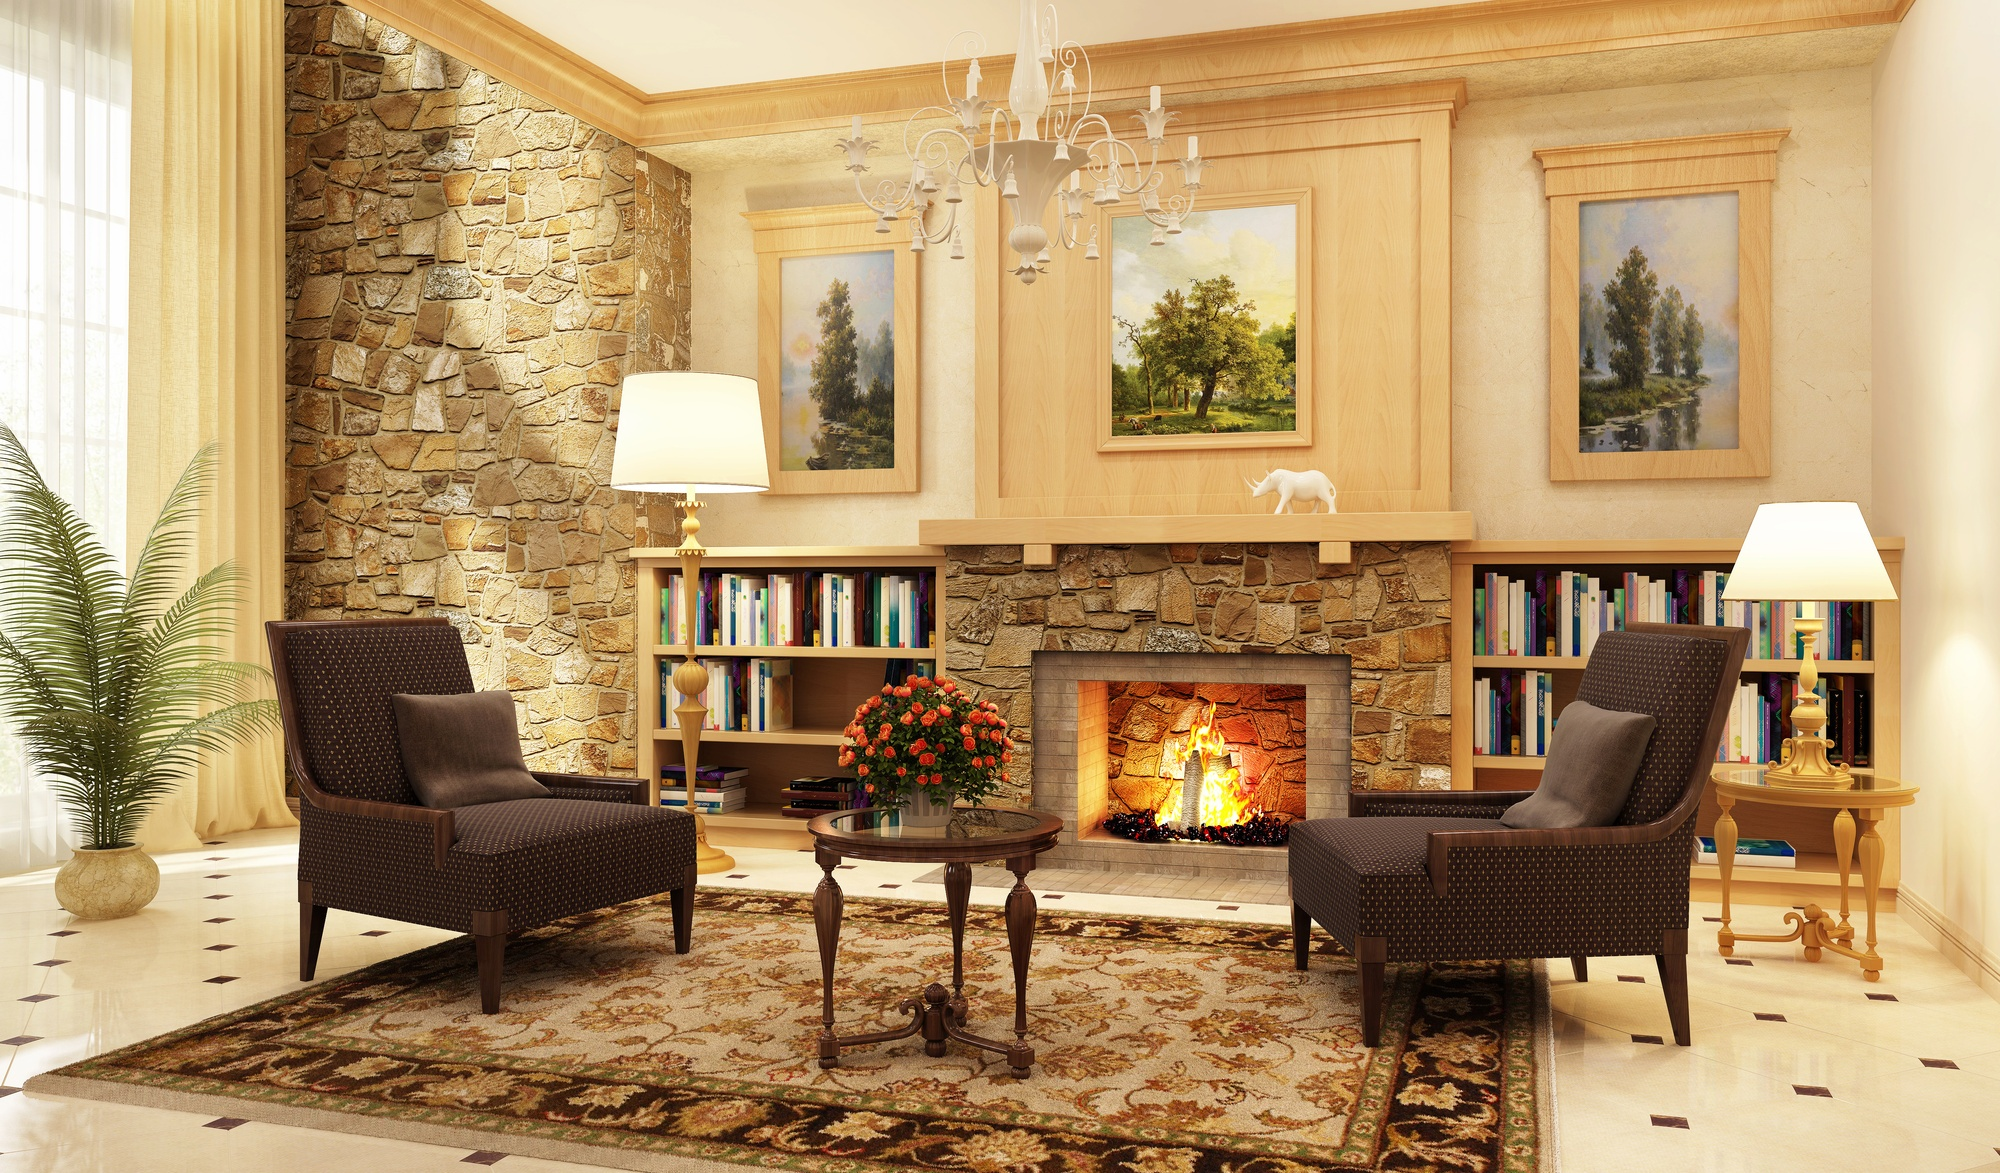 Type of Fireplaces | Fireplace Design Ideas for Every Budget